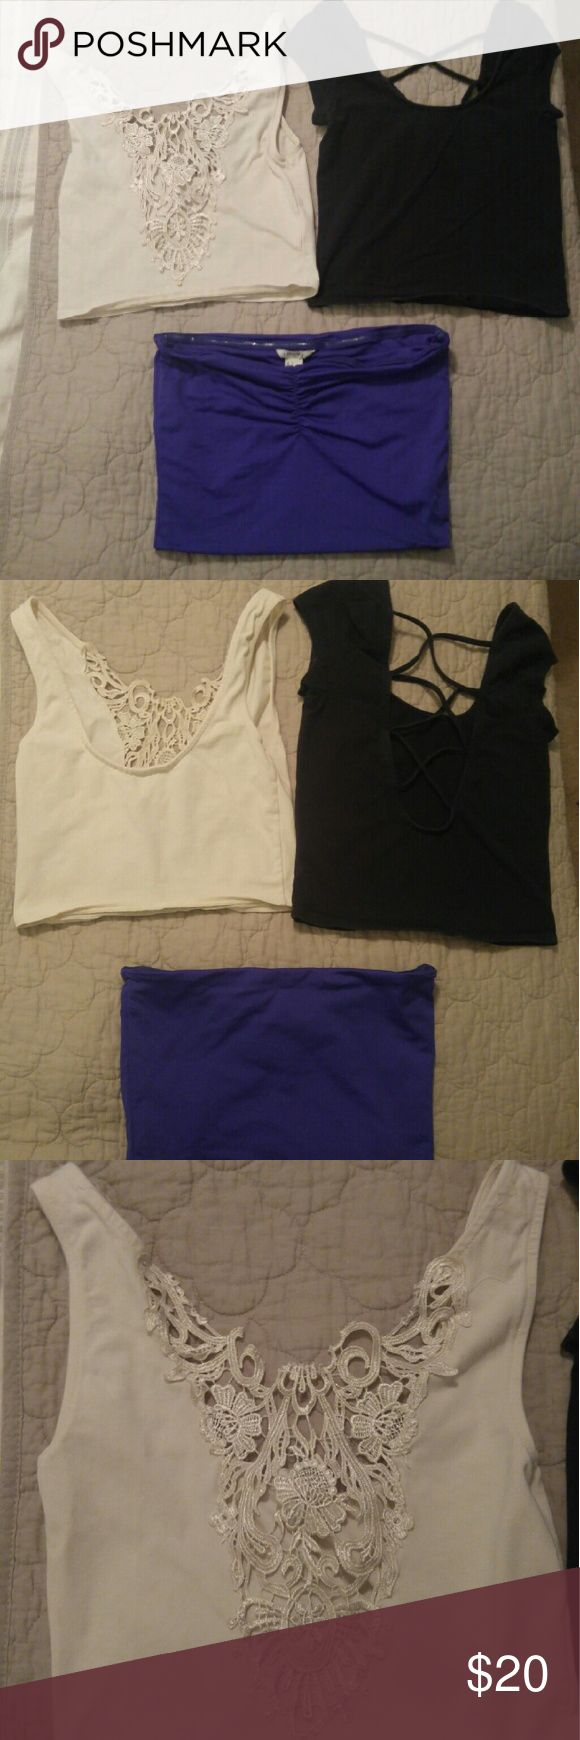 Three Crop Tops Size Small One purple crop top, one cream lacey crop top, one black strappy crop top Tops Crop Tops